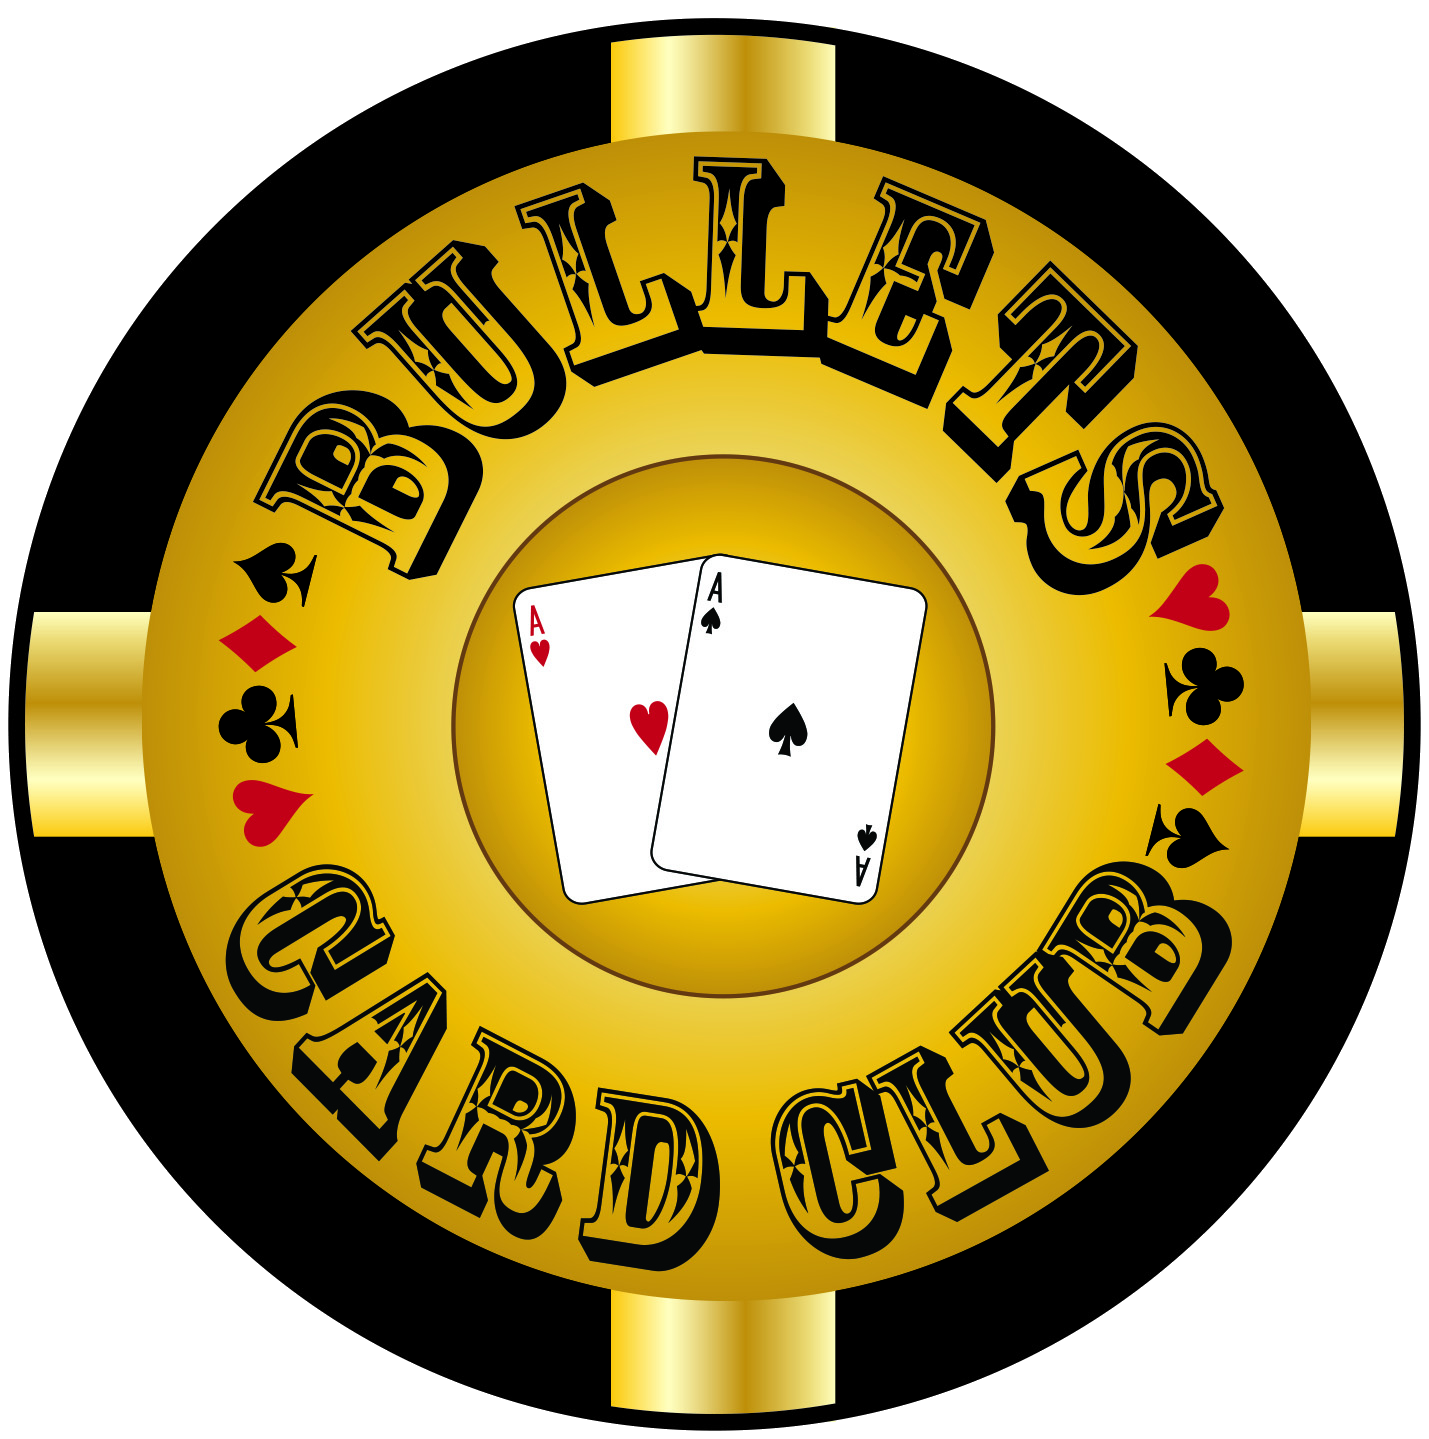 Bullets Card Club